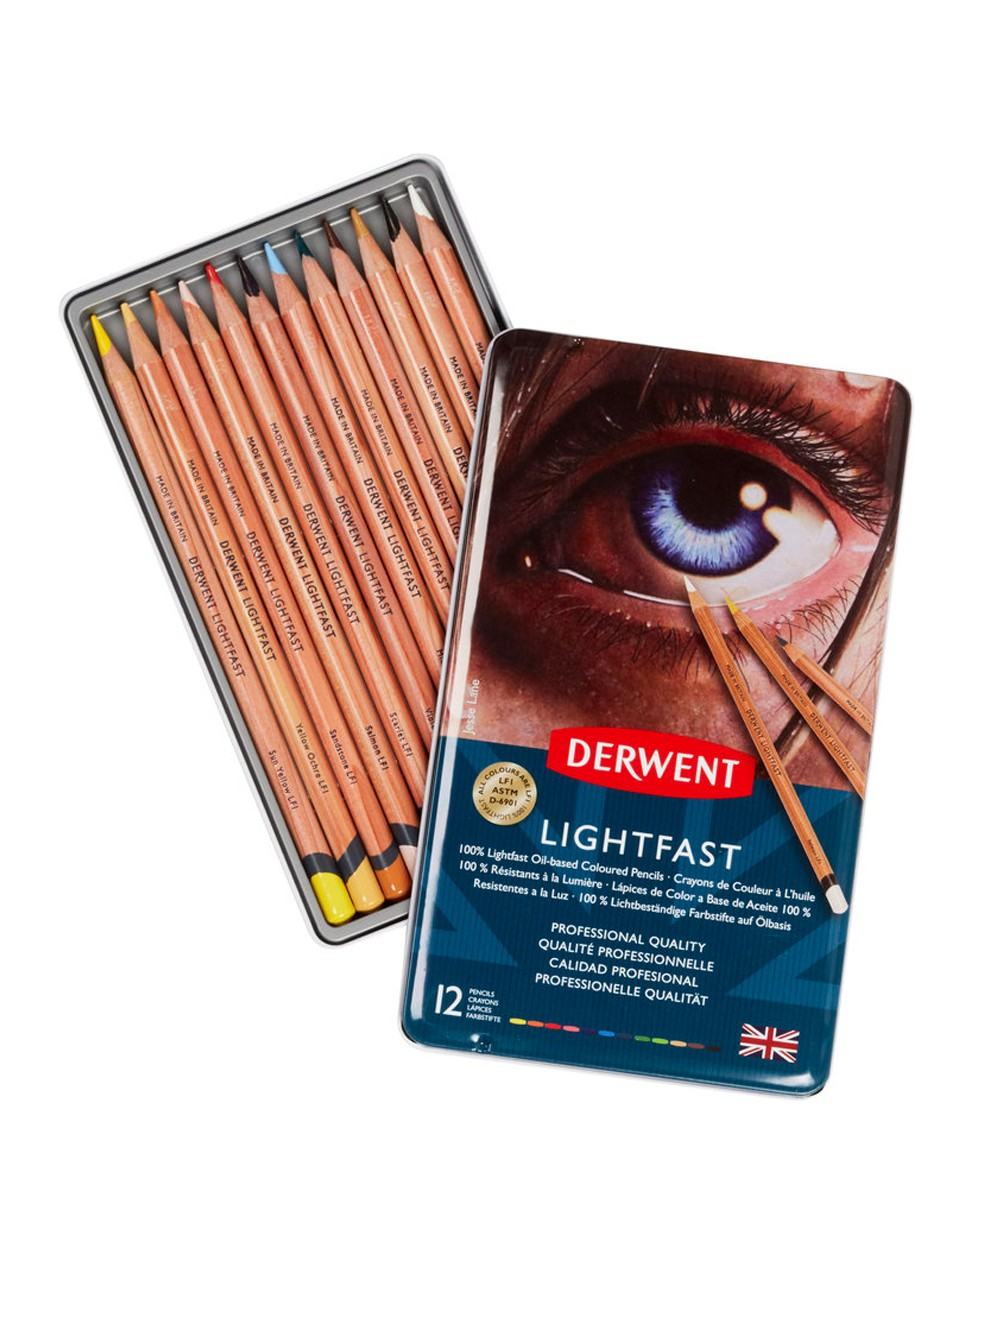 DERWENT LIGHTFAST PENCILS TIN X12